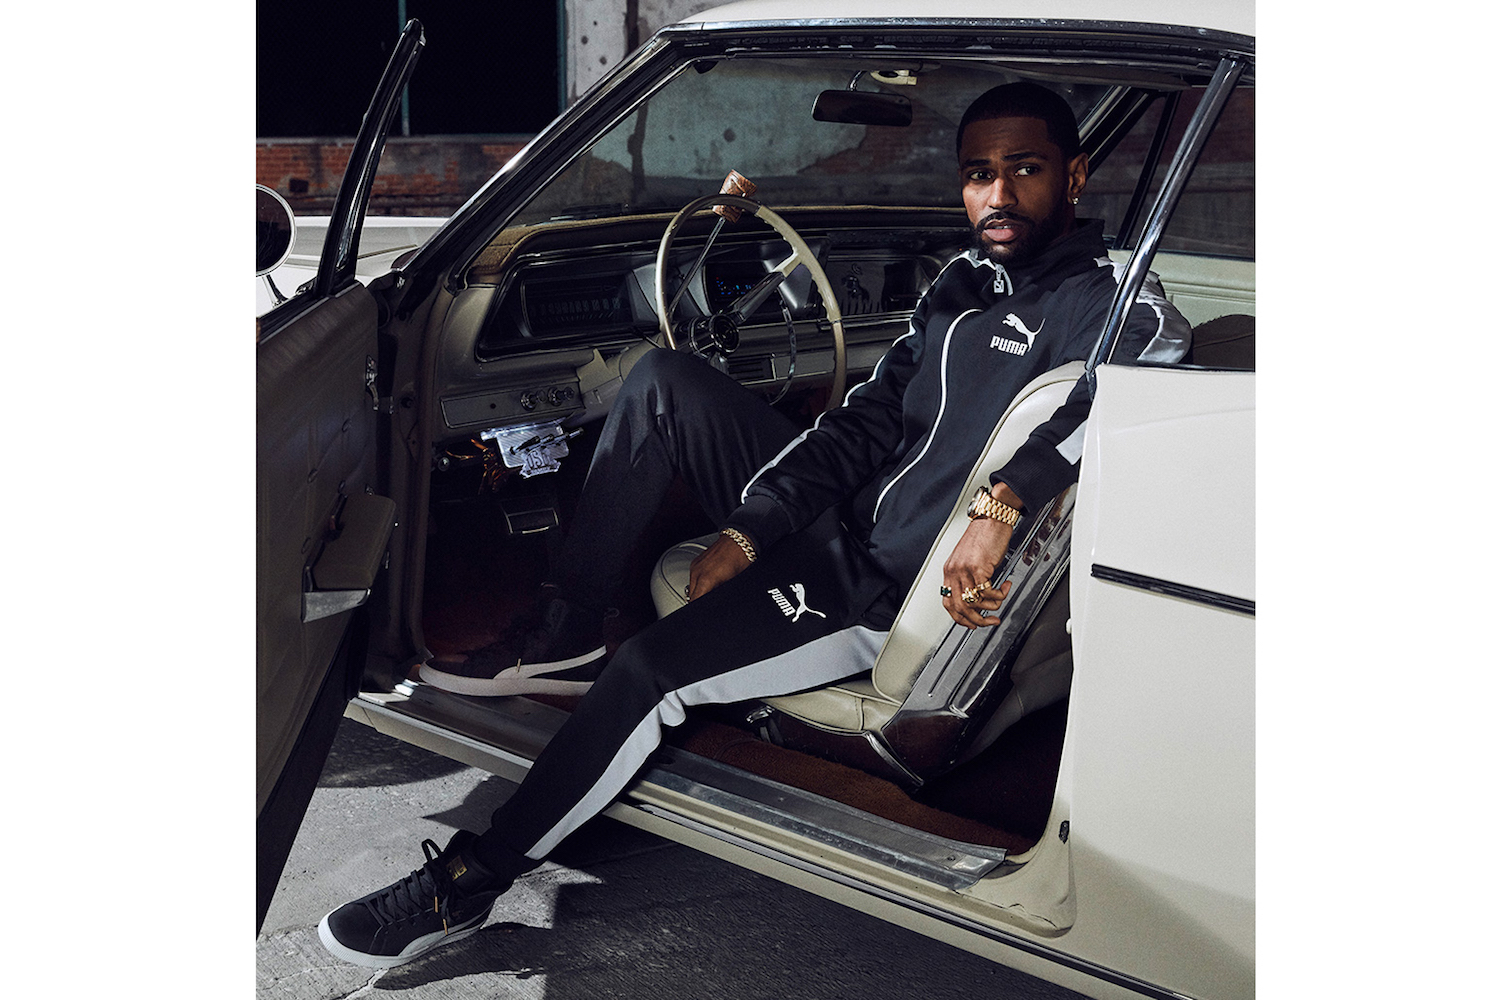 PUMA Release Clyde Mid 'Foil' Campaign With Big Sean